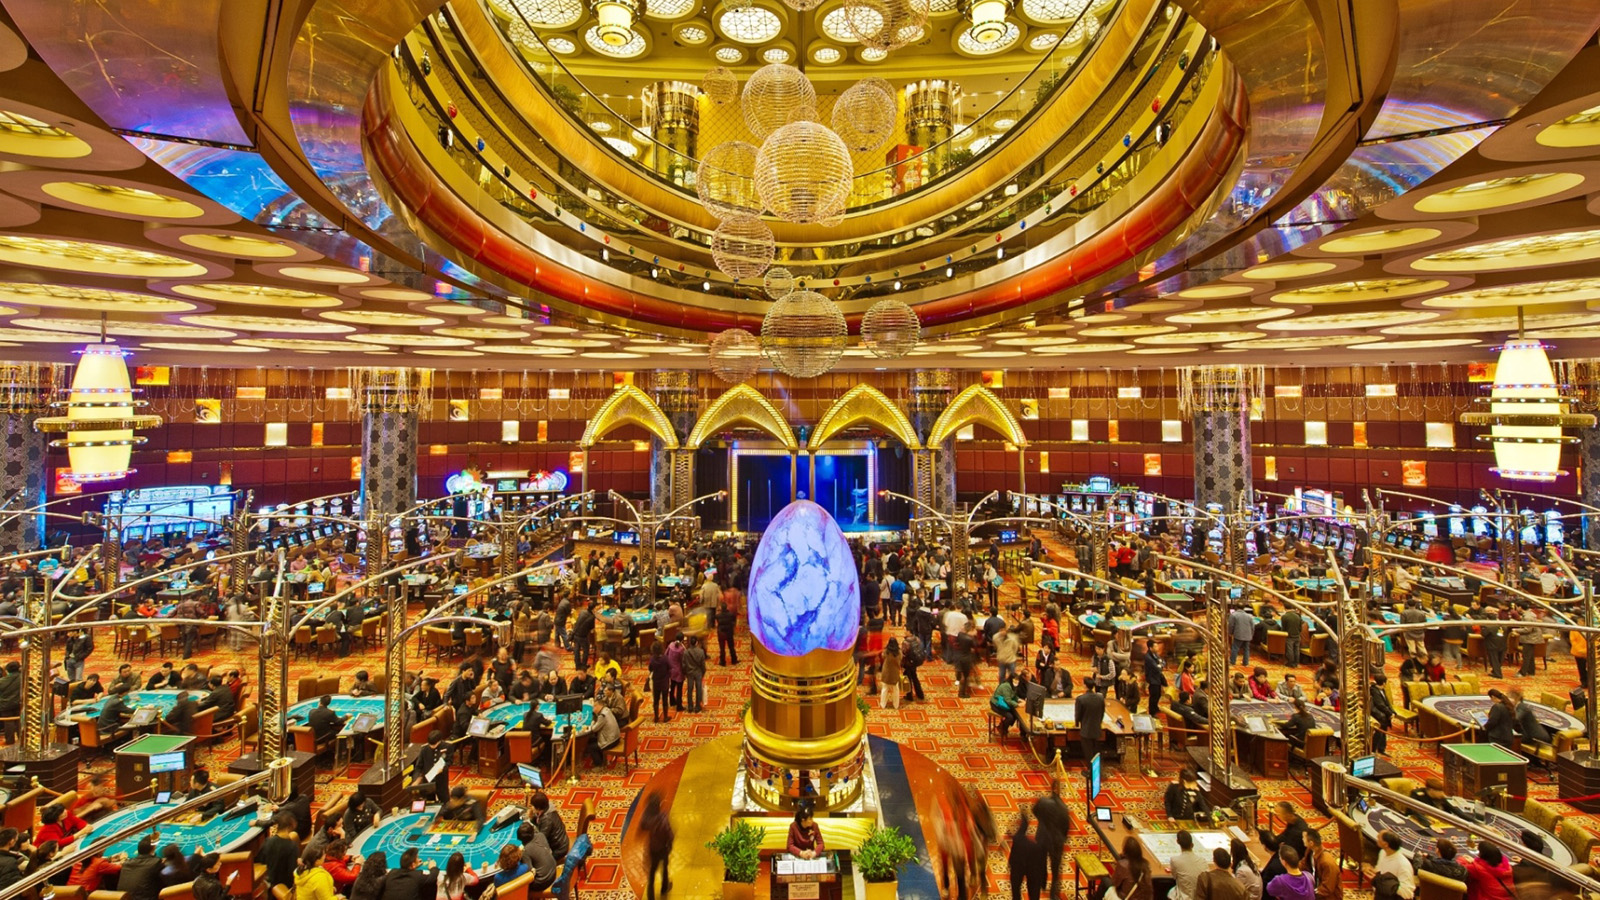 Where are the best slot machines in a casino